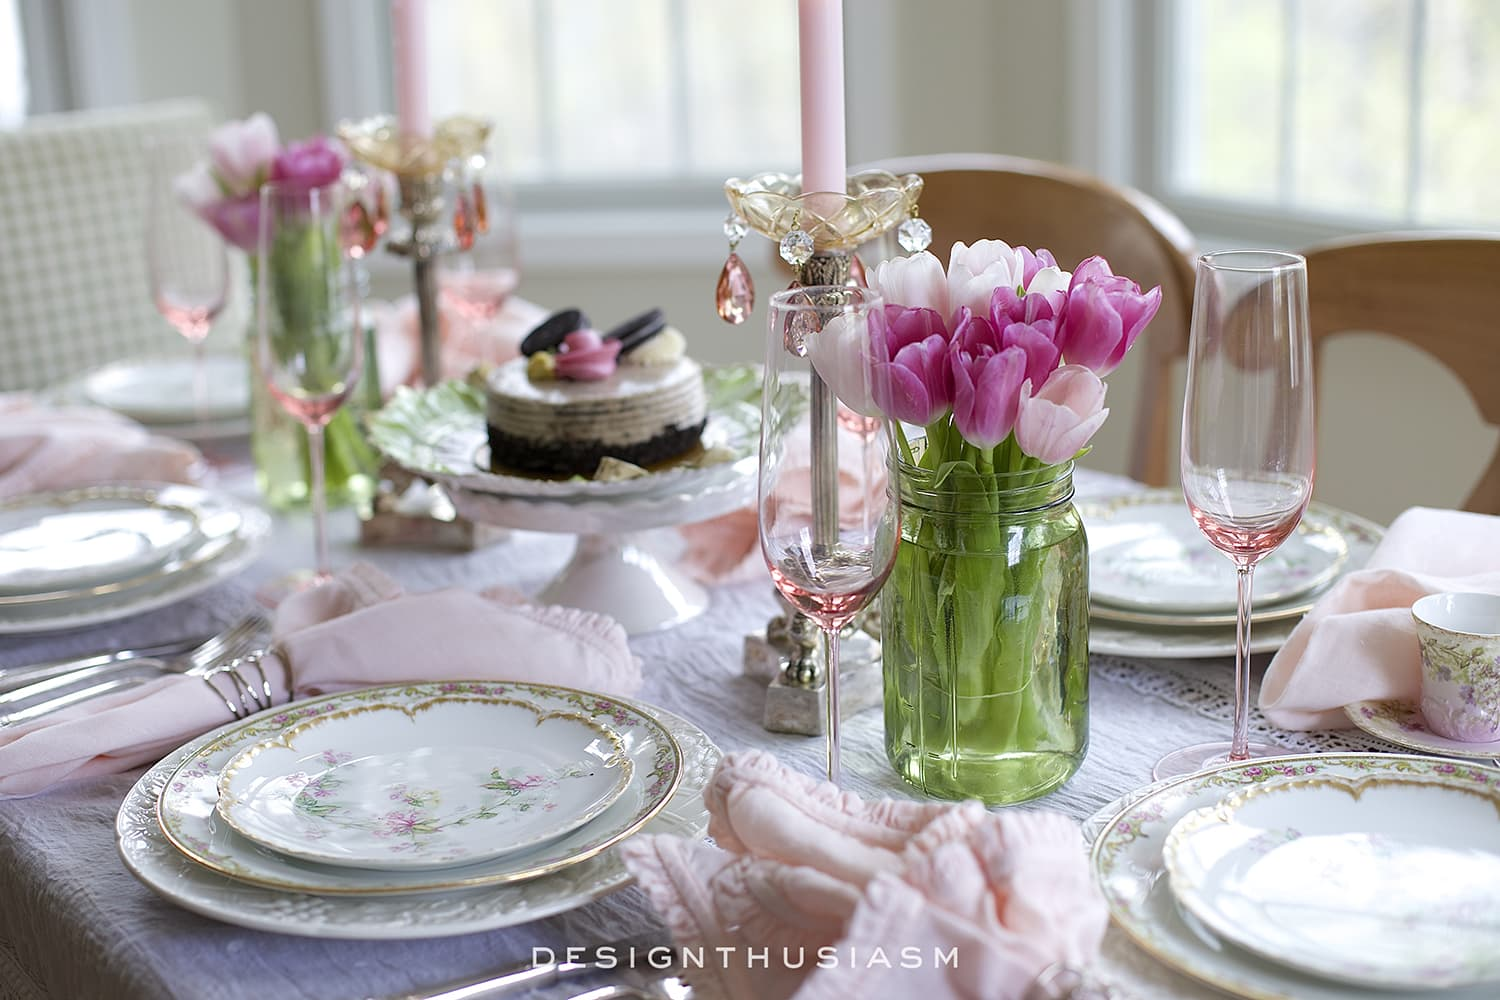 Mixing Old + New in a Spring Tablescape | Designthusiasm.com